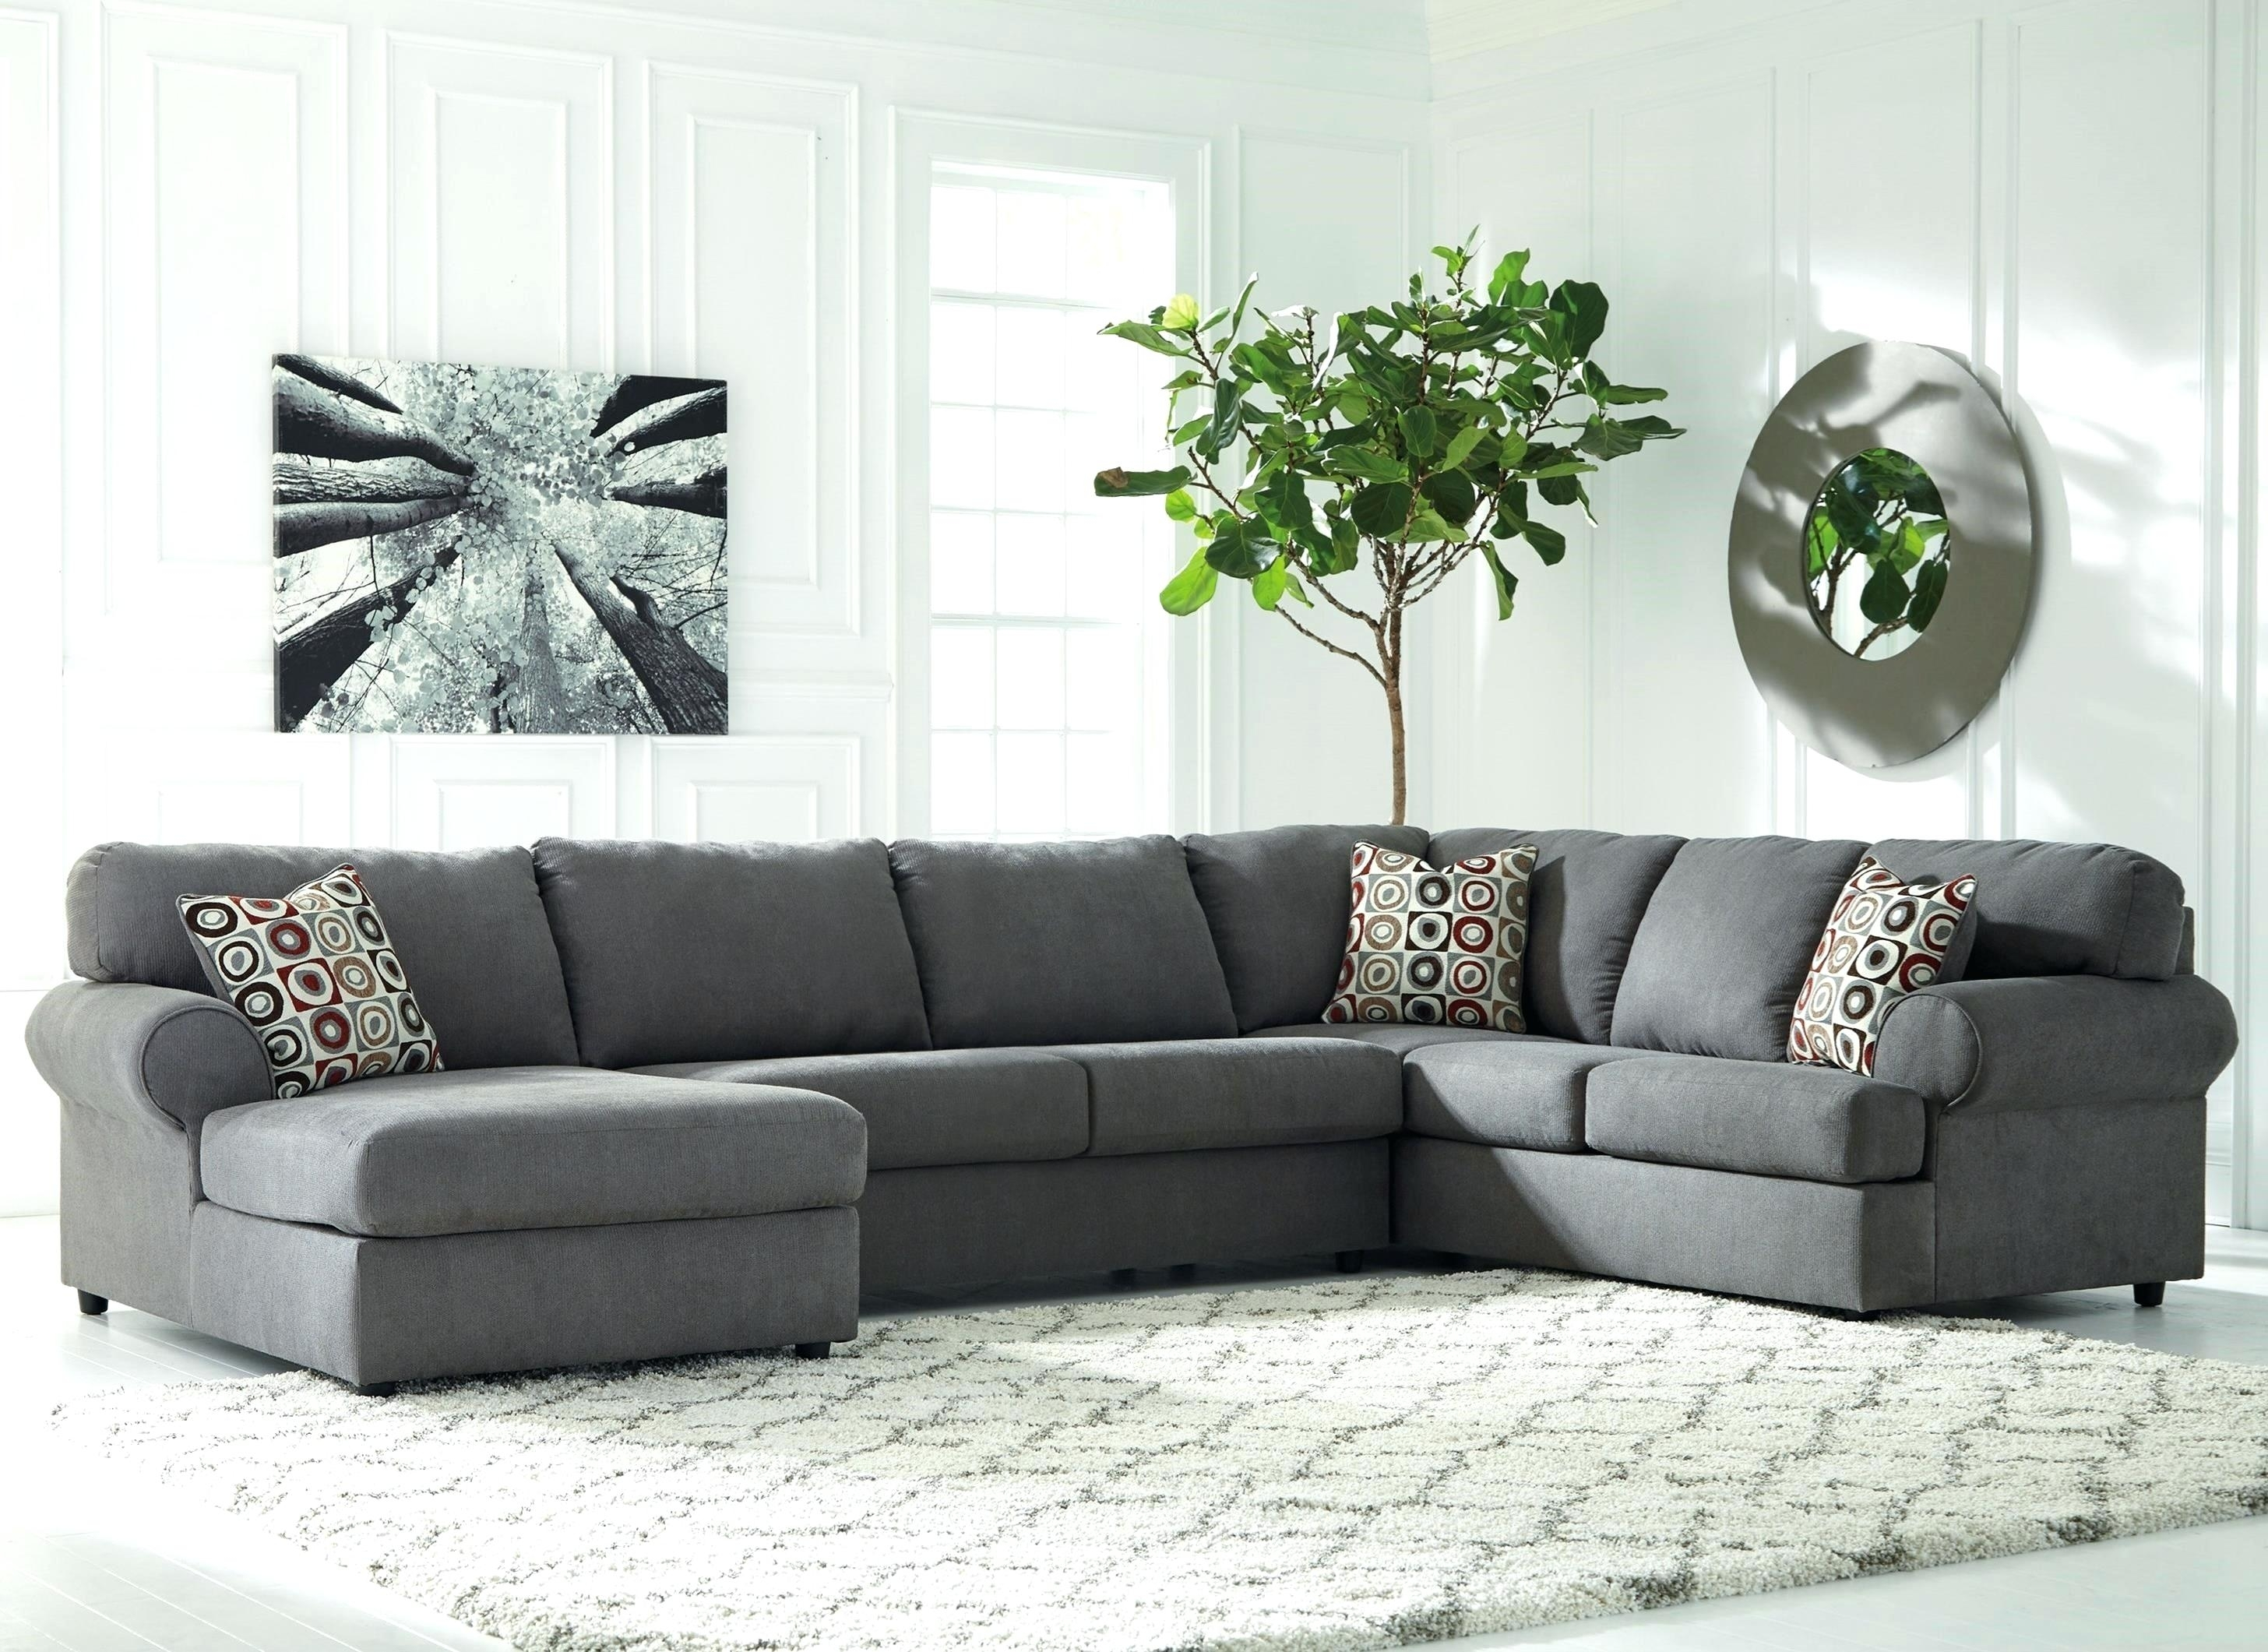 3 Piece Sectional Haven Blue Steel 3 Piece Sectional 3 Pc Reclining for Haven Blue Steel 3 Piece Sectionals (Image 2 of 30)